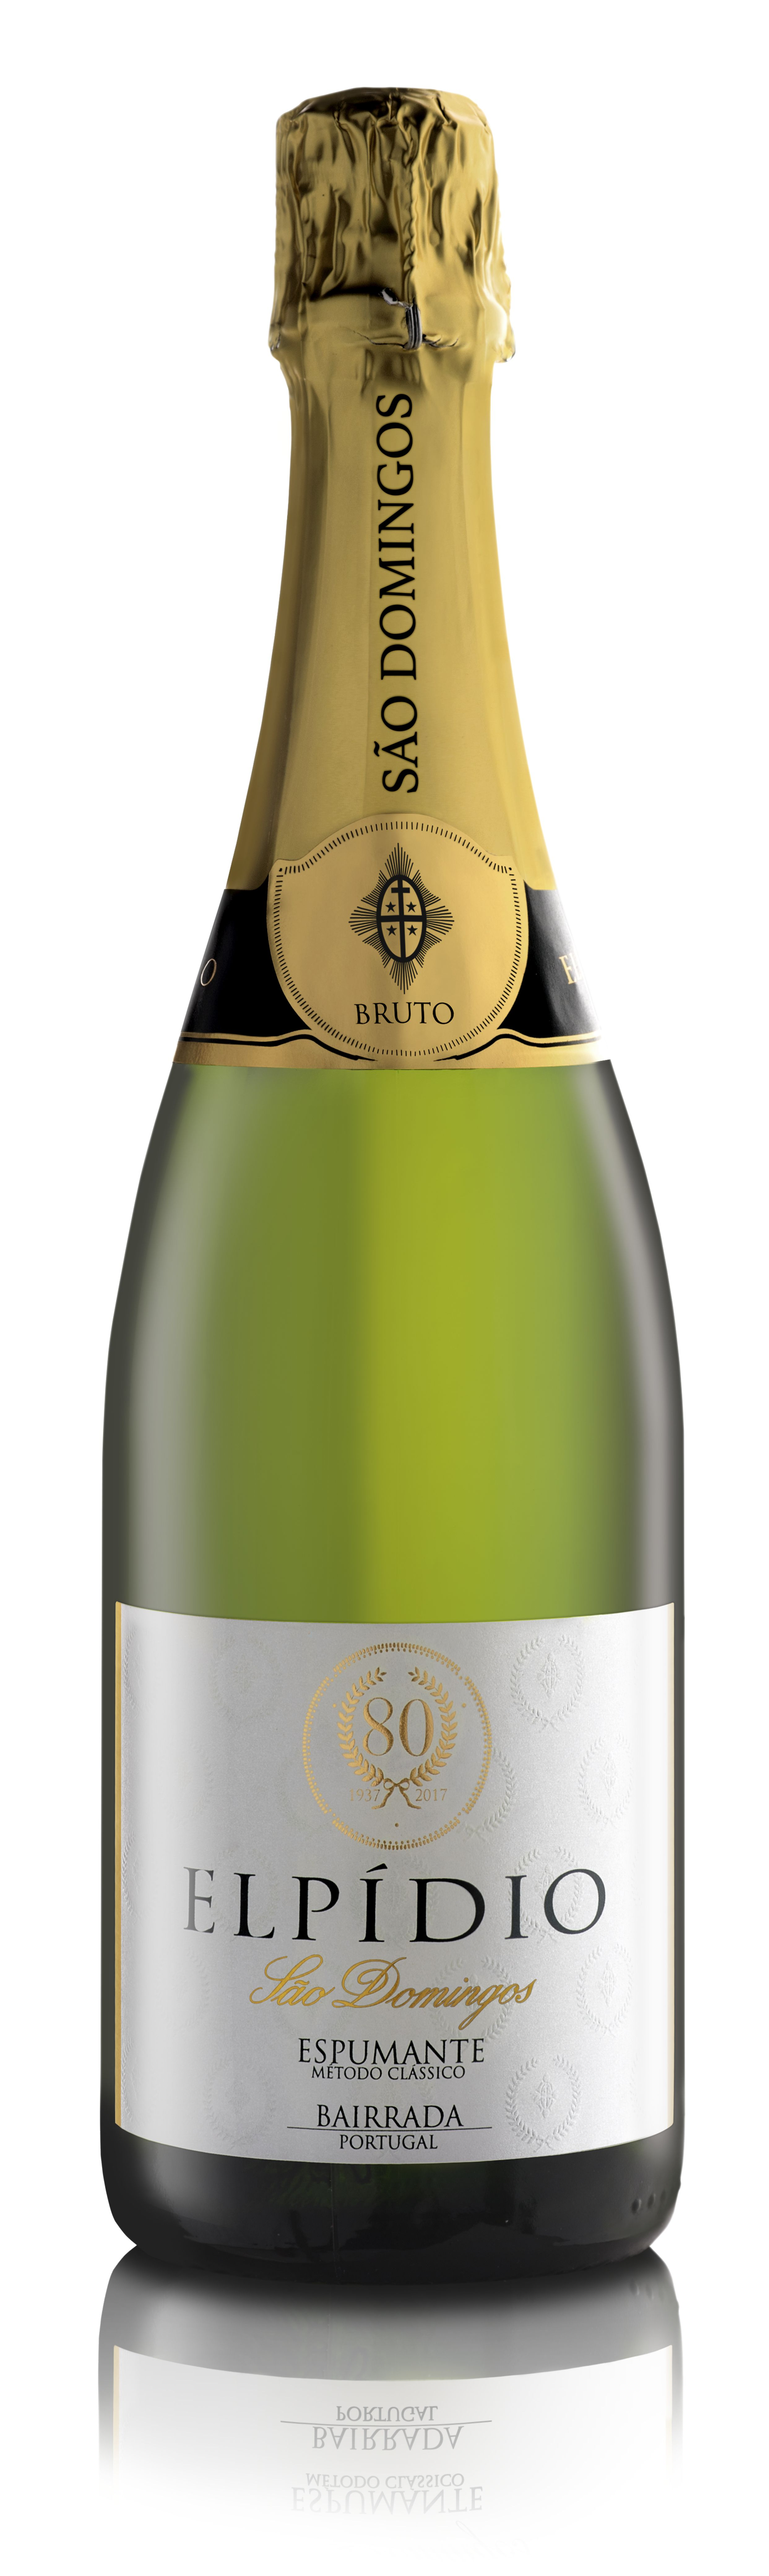 Elpídio 80, unrepeatable, sophisticated sparkling, vibrant, fresh and with good amplitude.